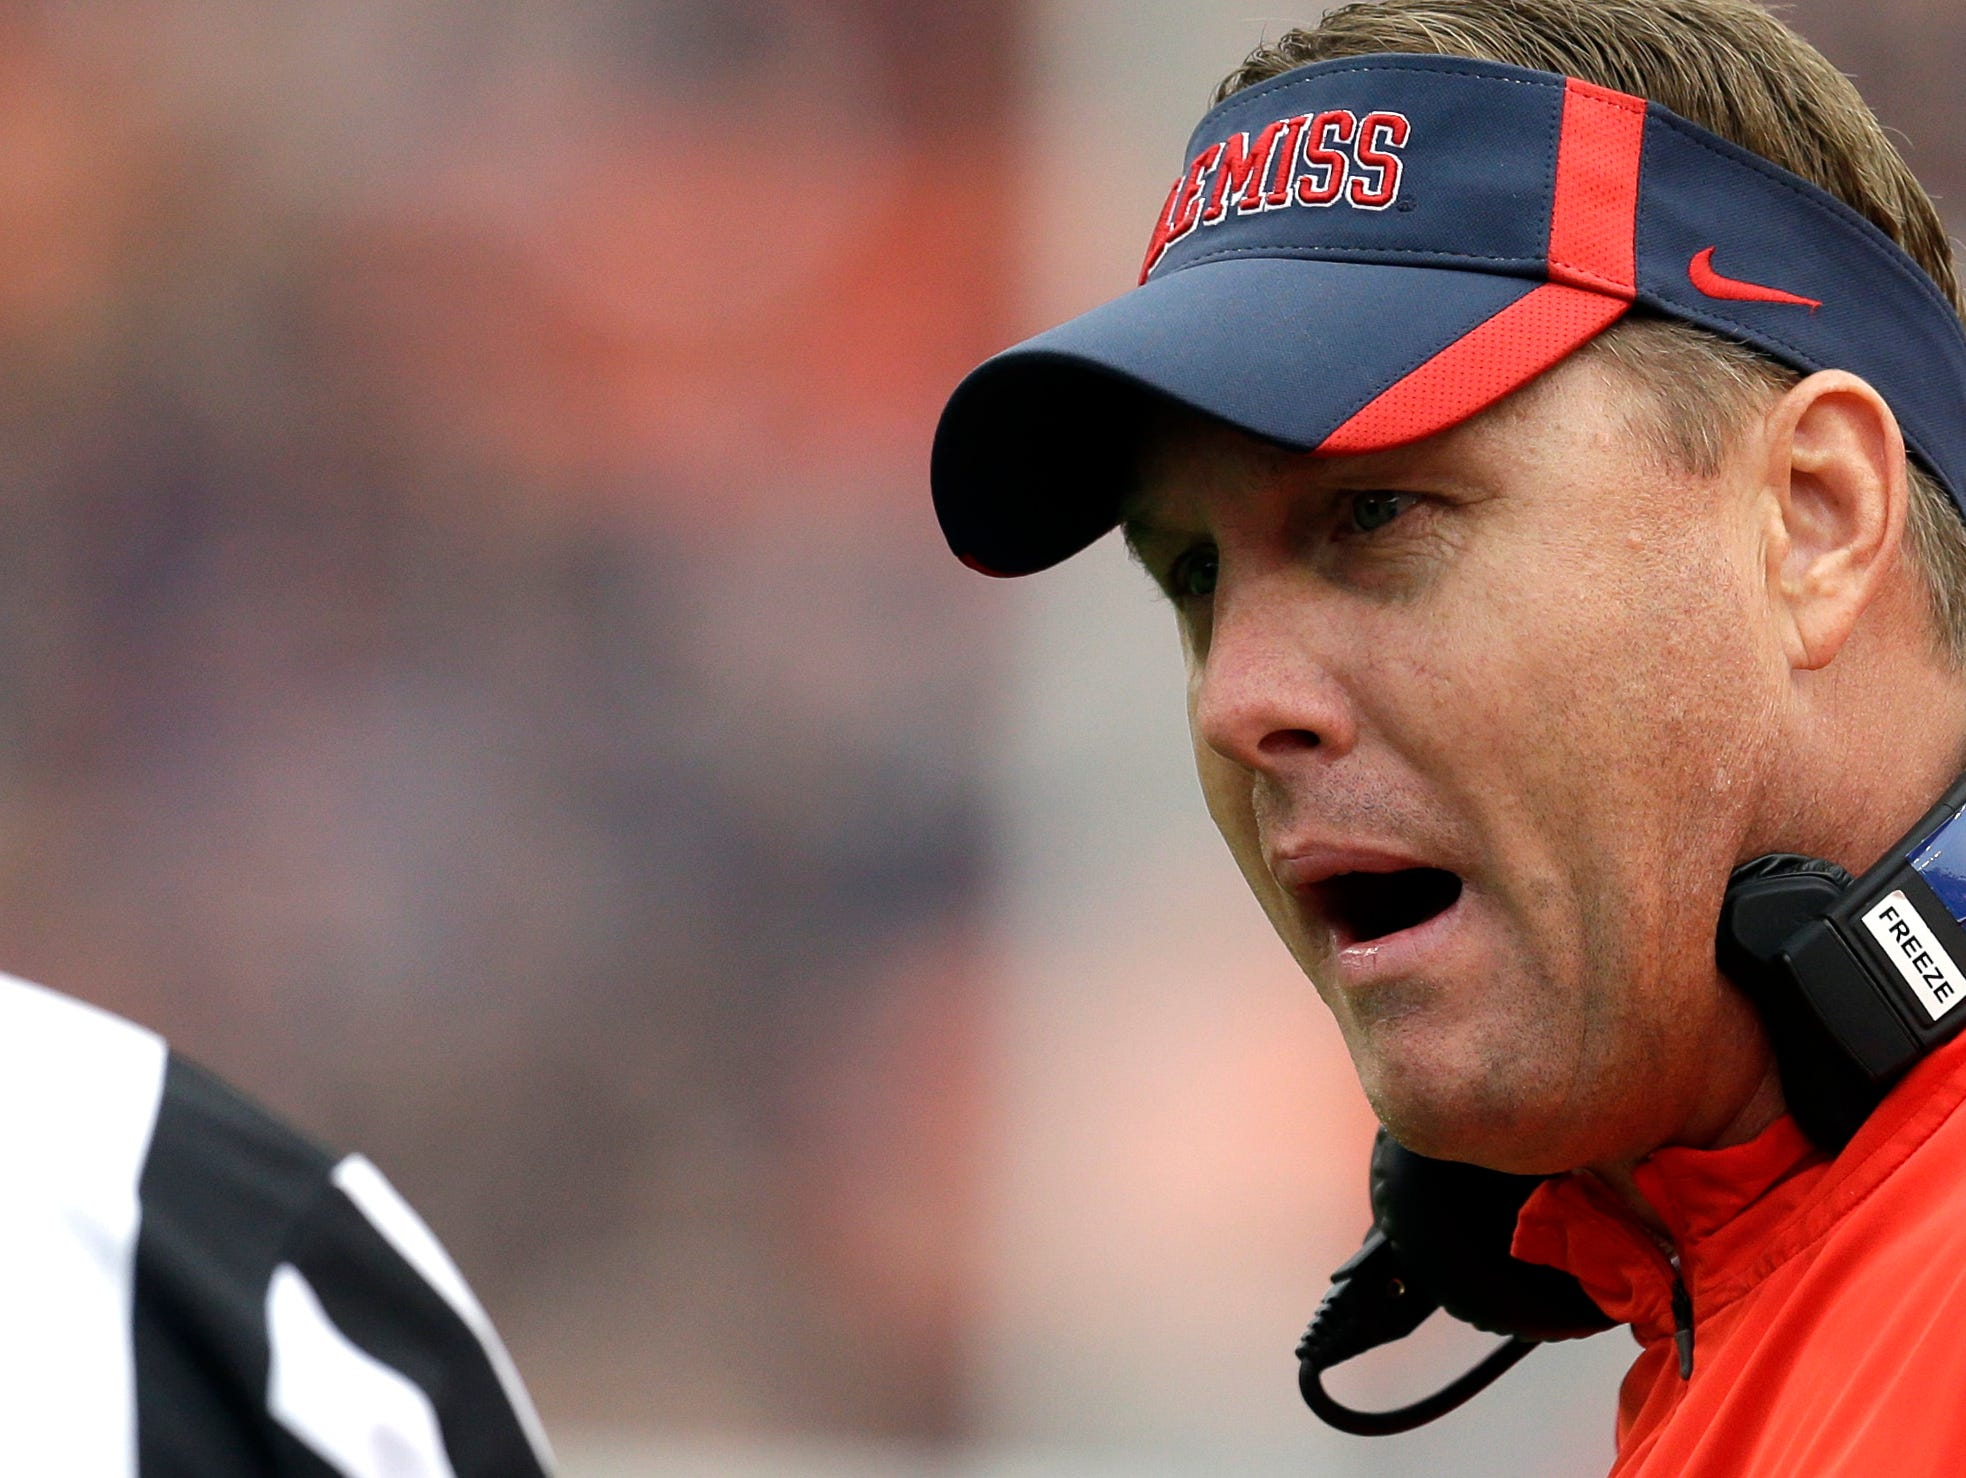 Ole Miss coach Hugh Freeze has two games left with three NFL first round picks and 10 senior starters on its roster.